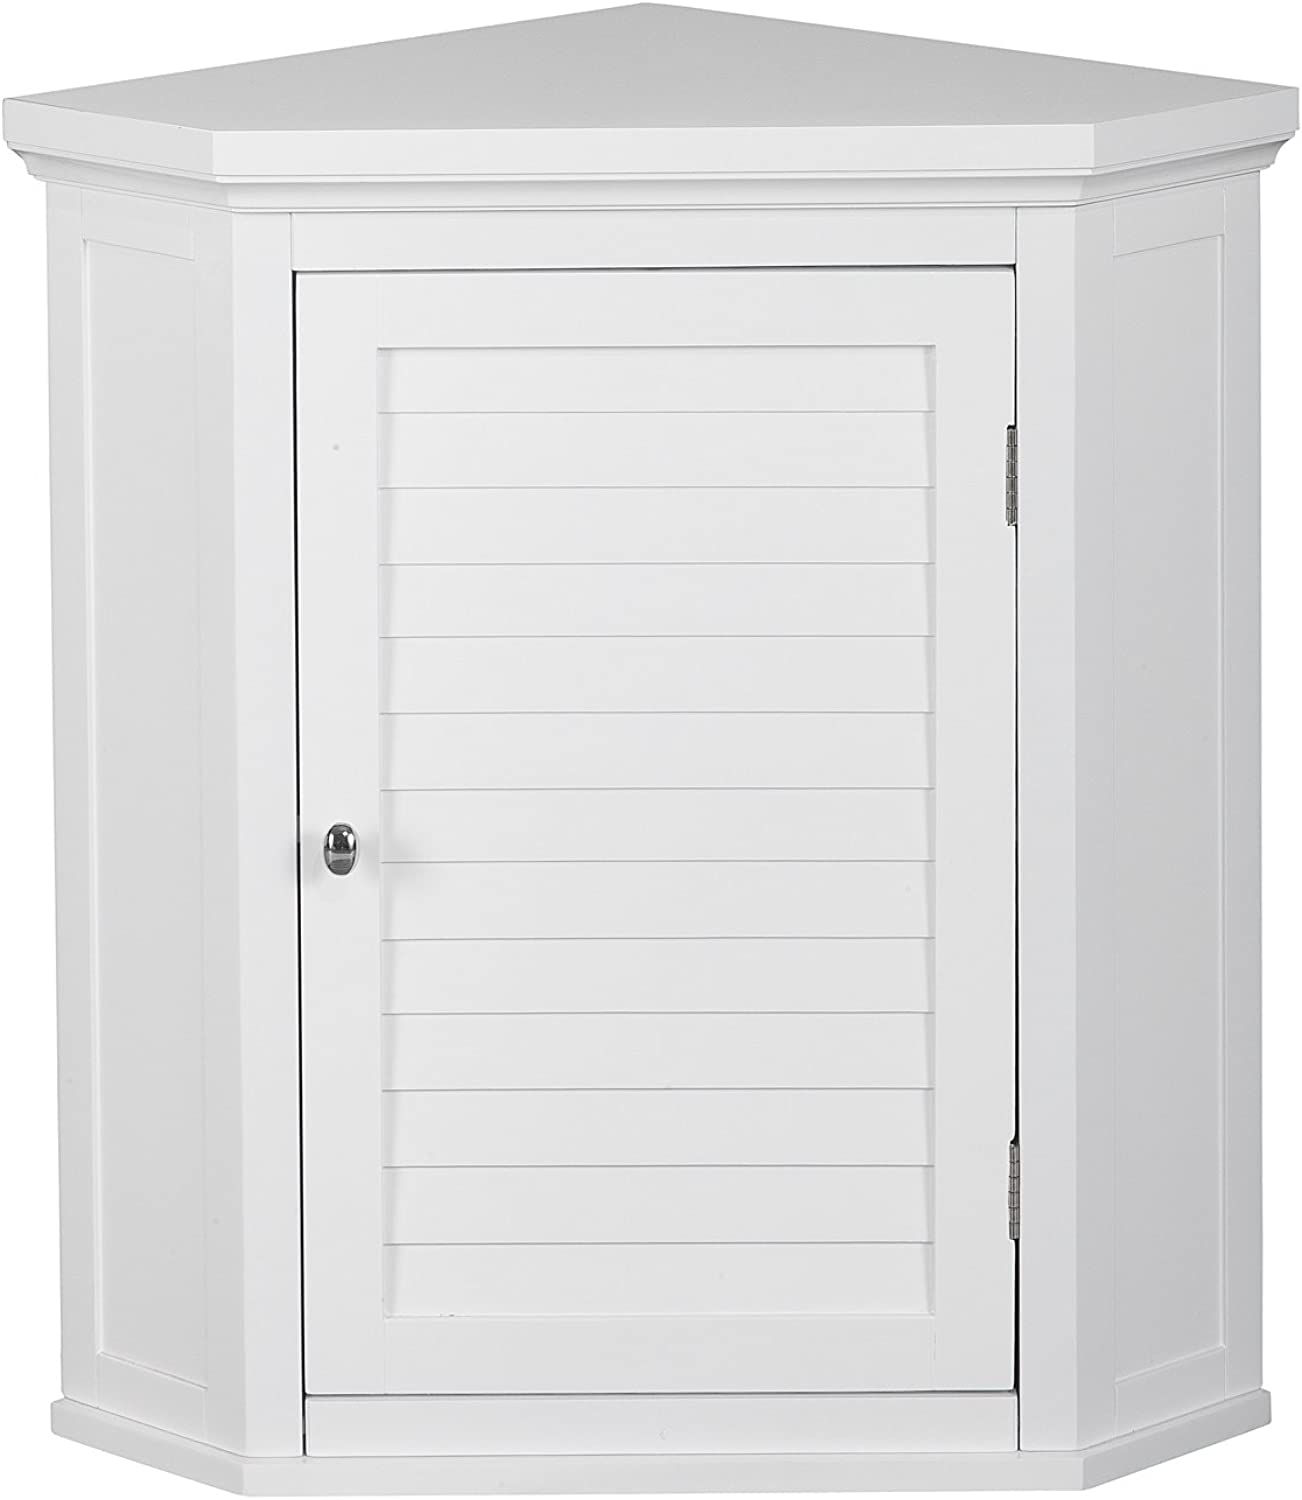 Elegant Home Fashions Adriana Corner Wall Cabinet with 1-Shutter Door